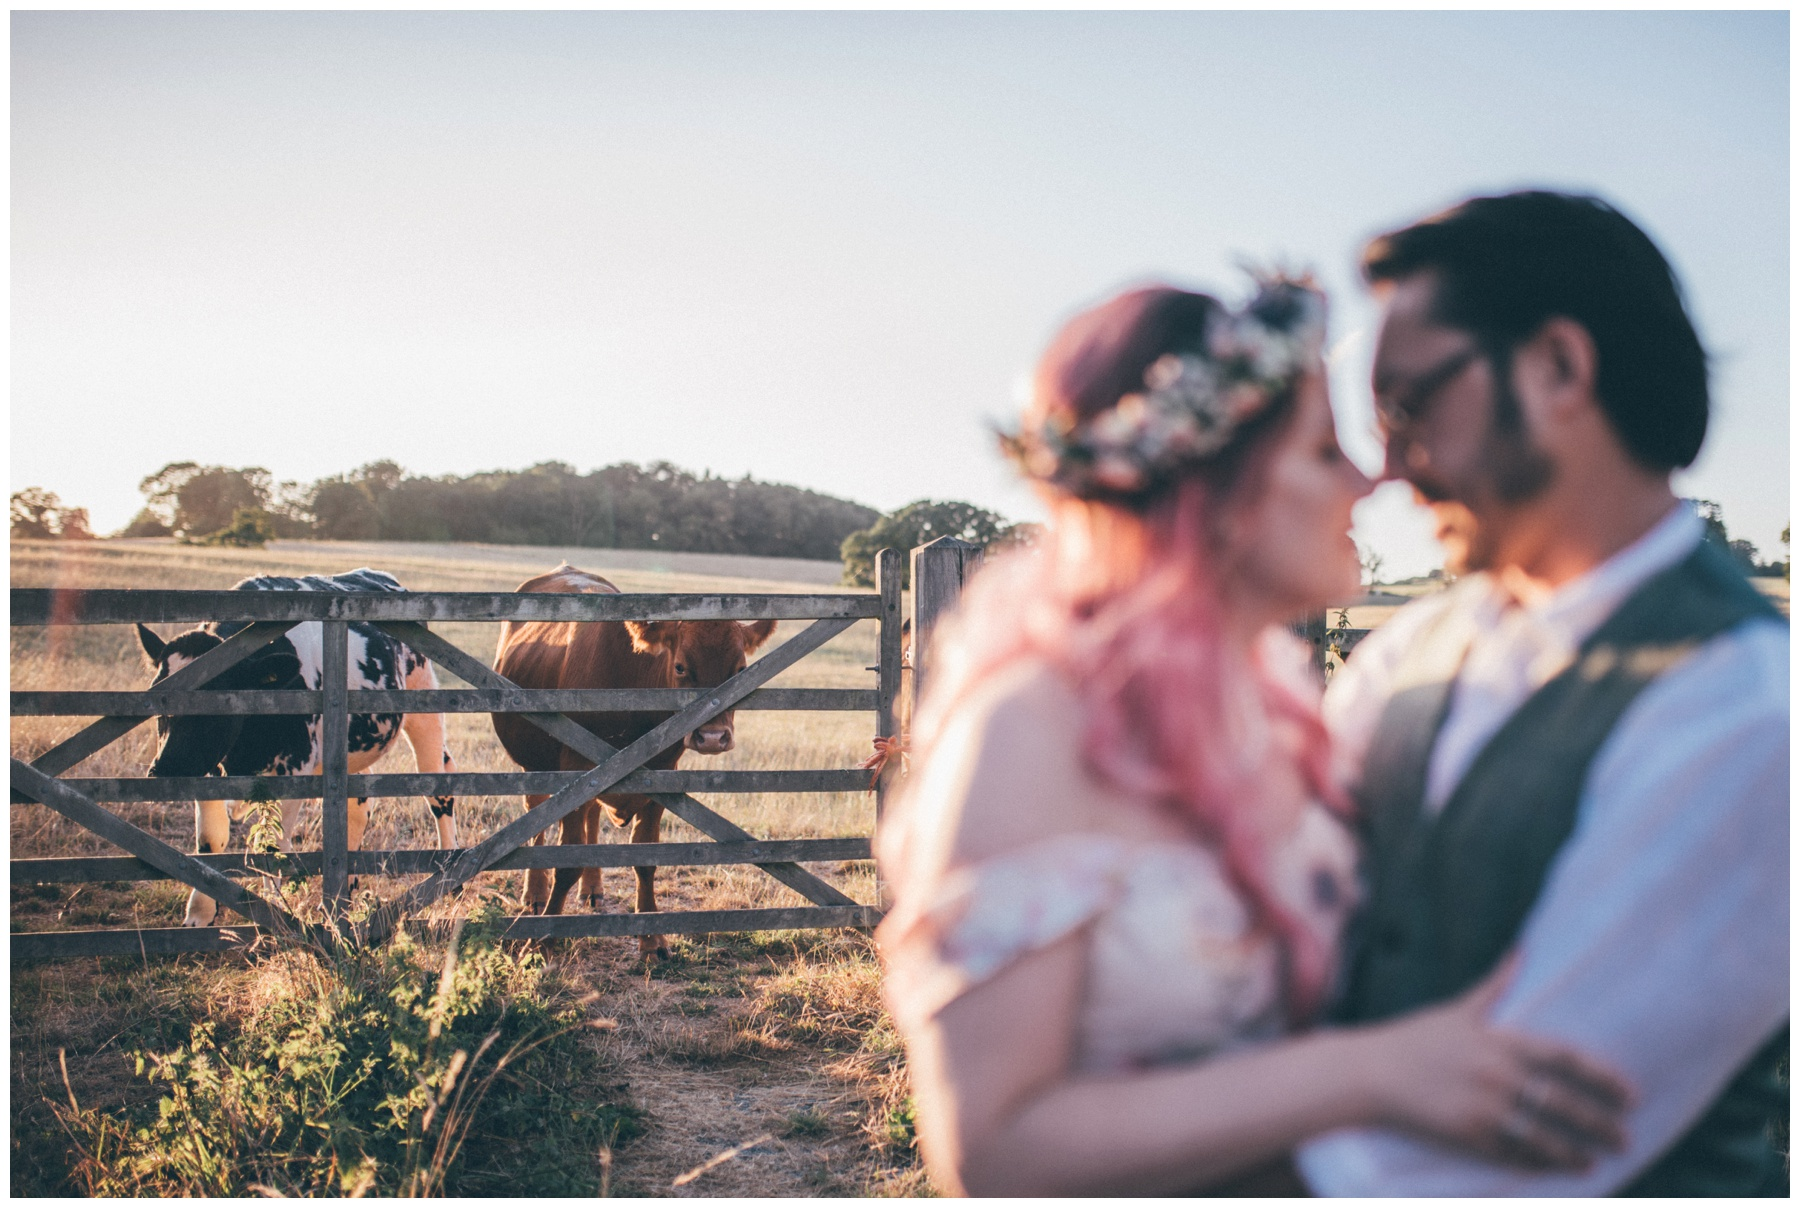 Cows look on hilariously at the bride and groom having a cuddle in Staffordshire wedding.